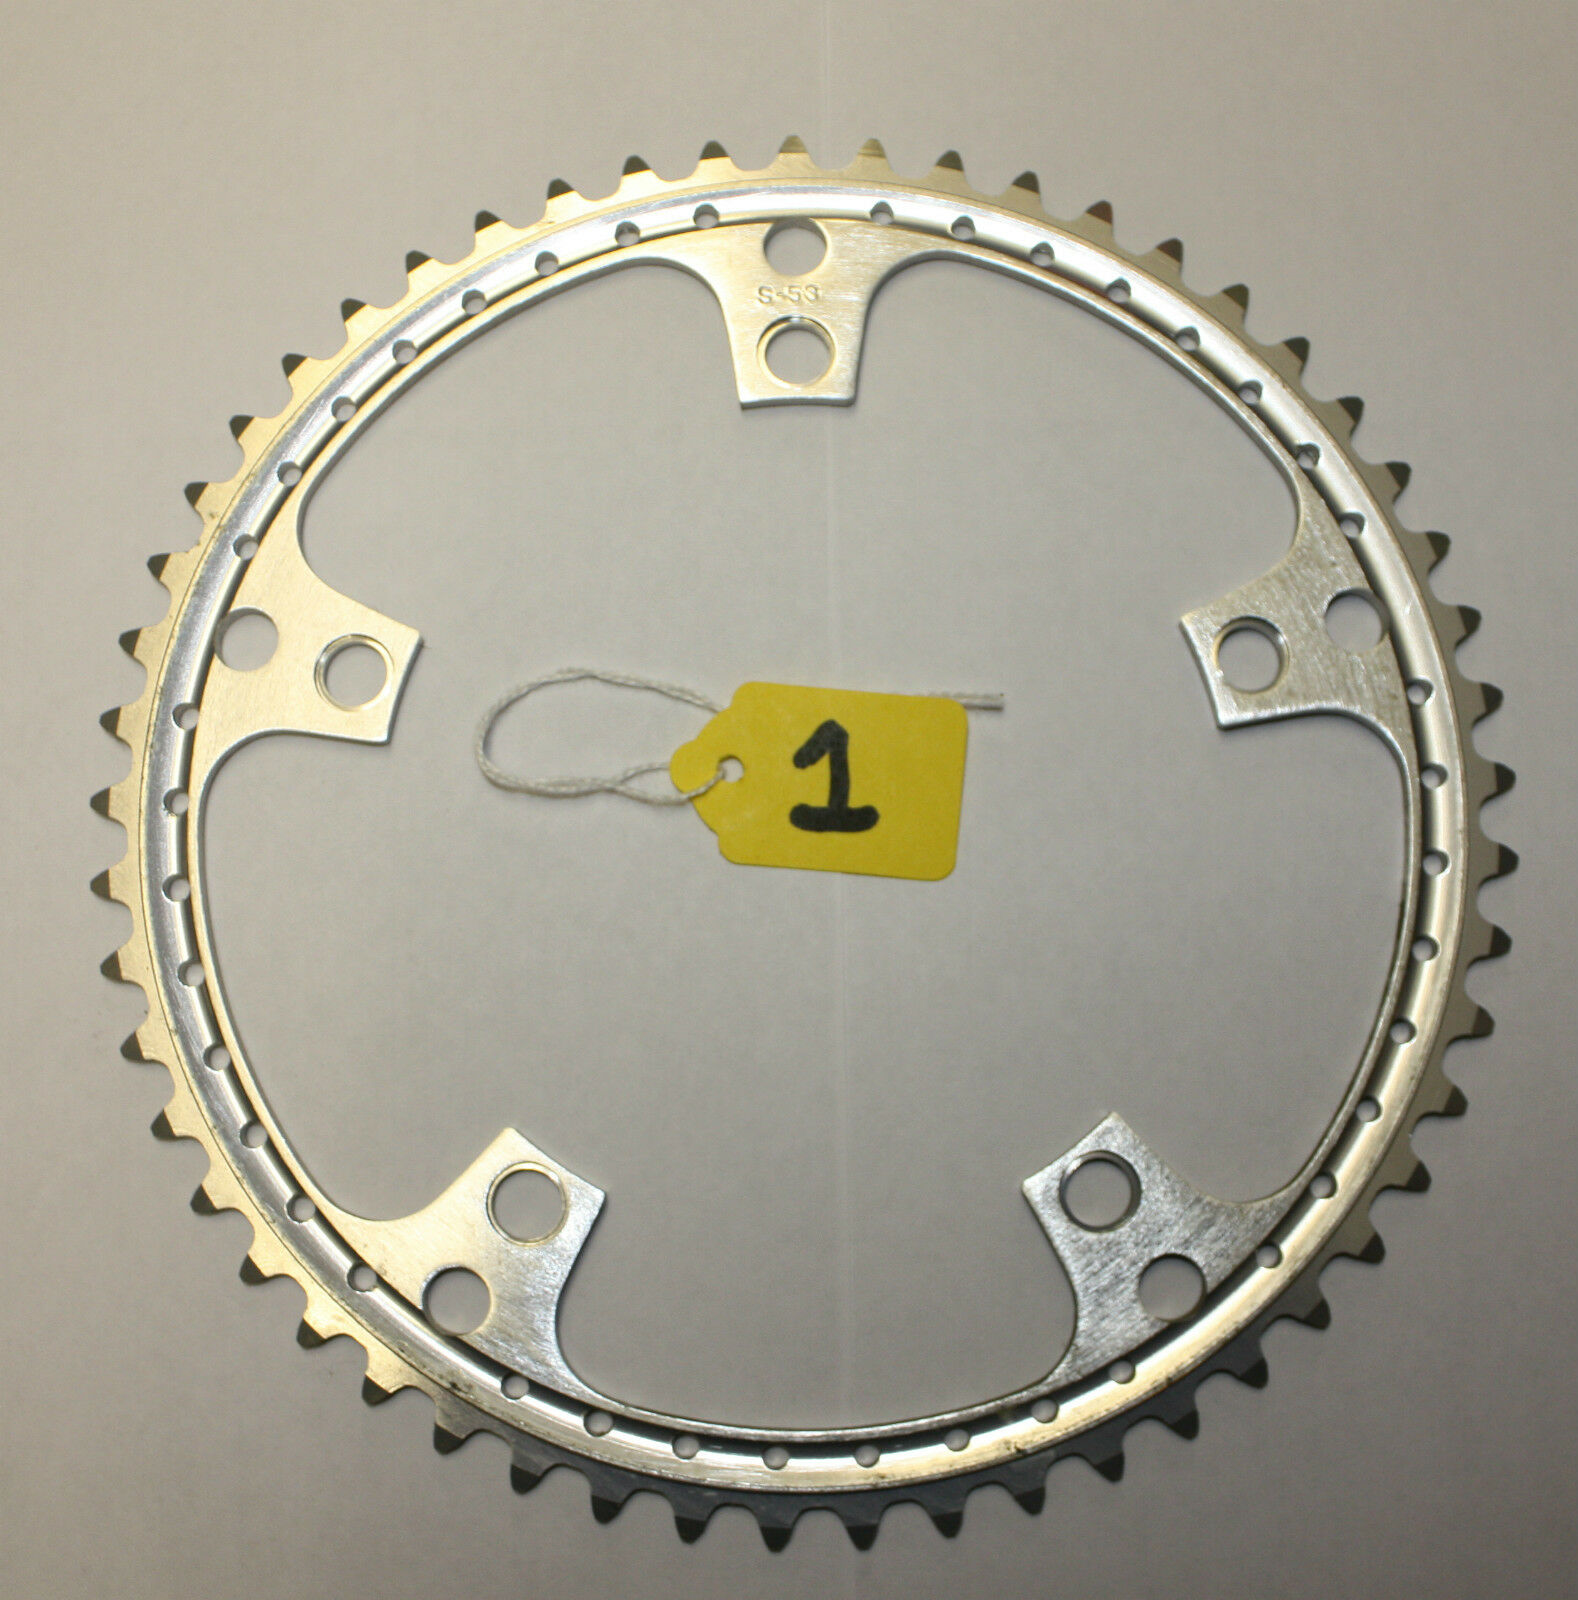 NOS 53T 144 BCD  DRILLED CHAINRING FIT CAMPAGNOLO FOR ROAD RACING BIKE NO.1  fast shipping to you